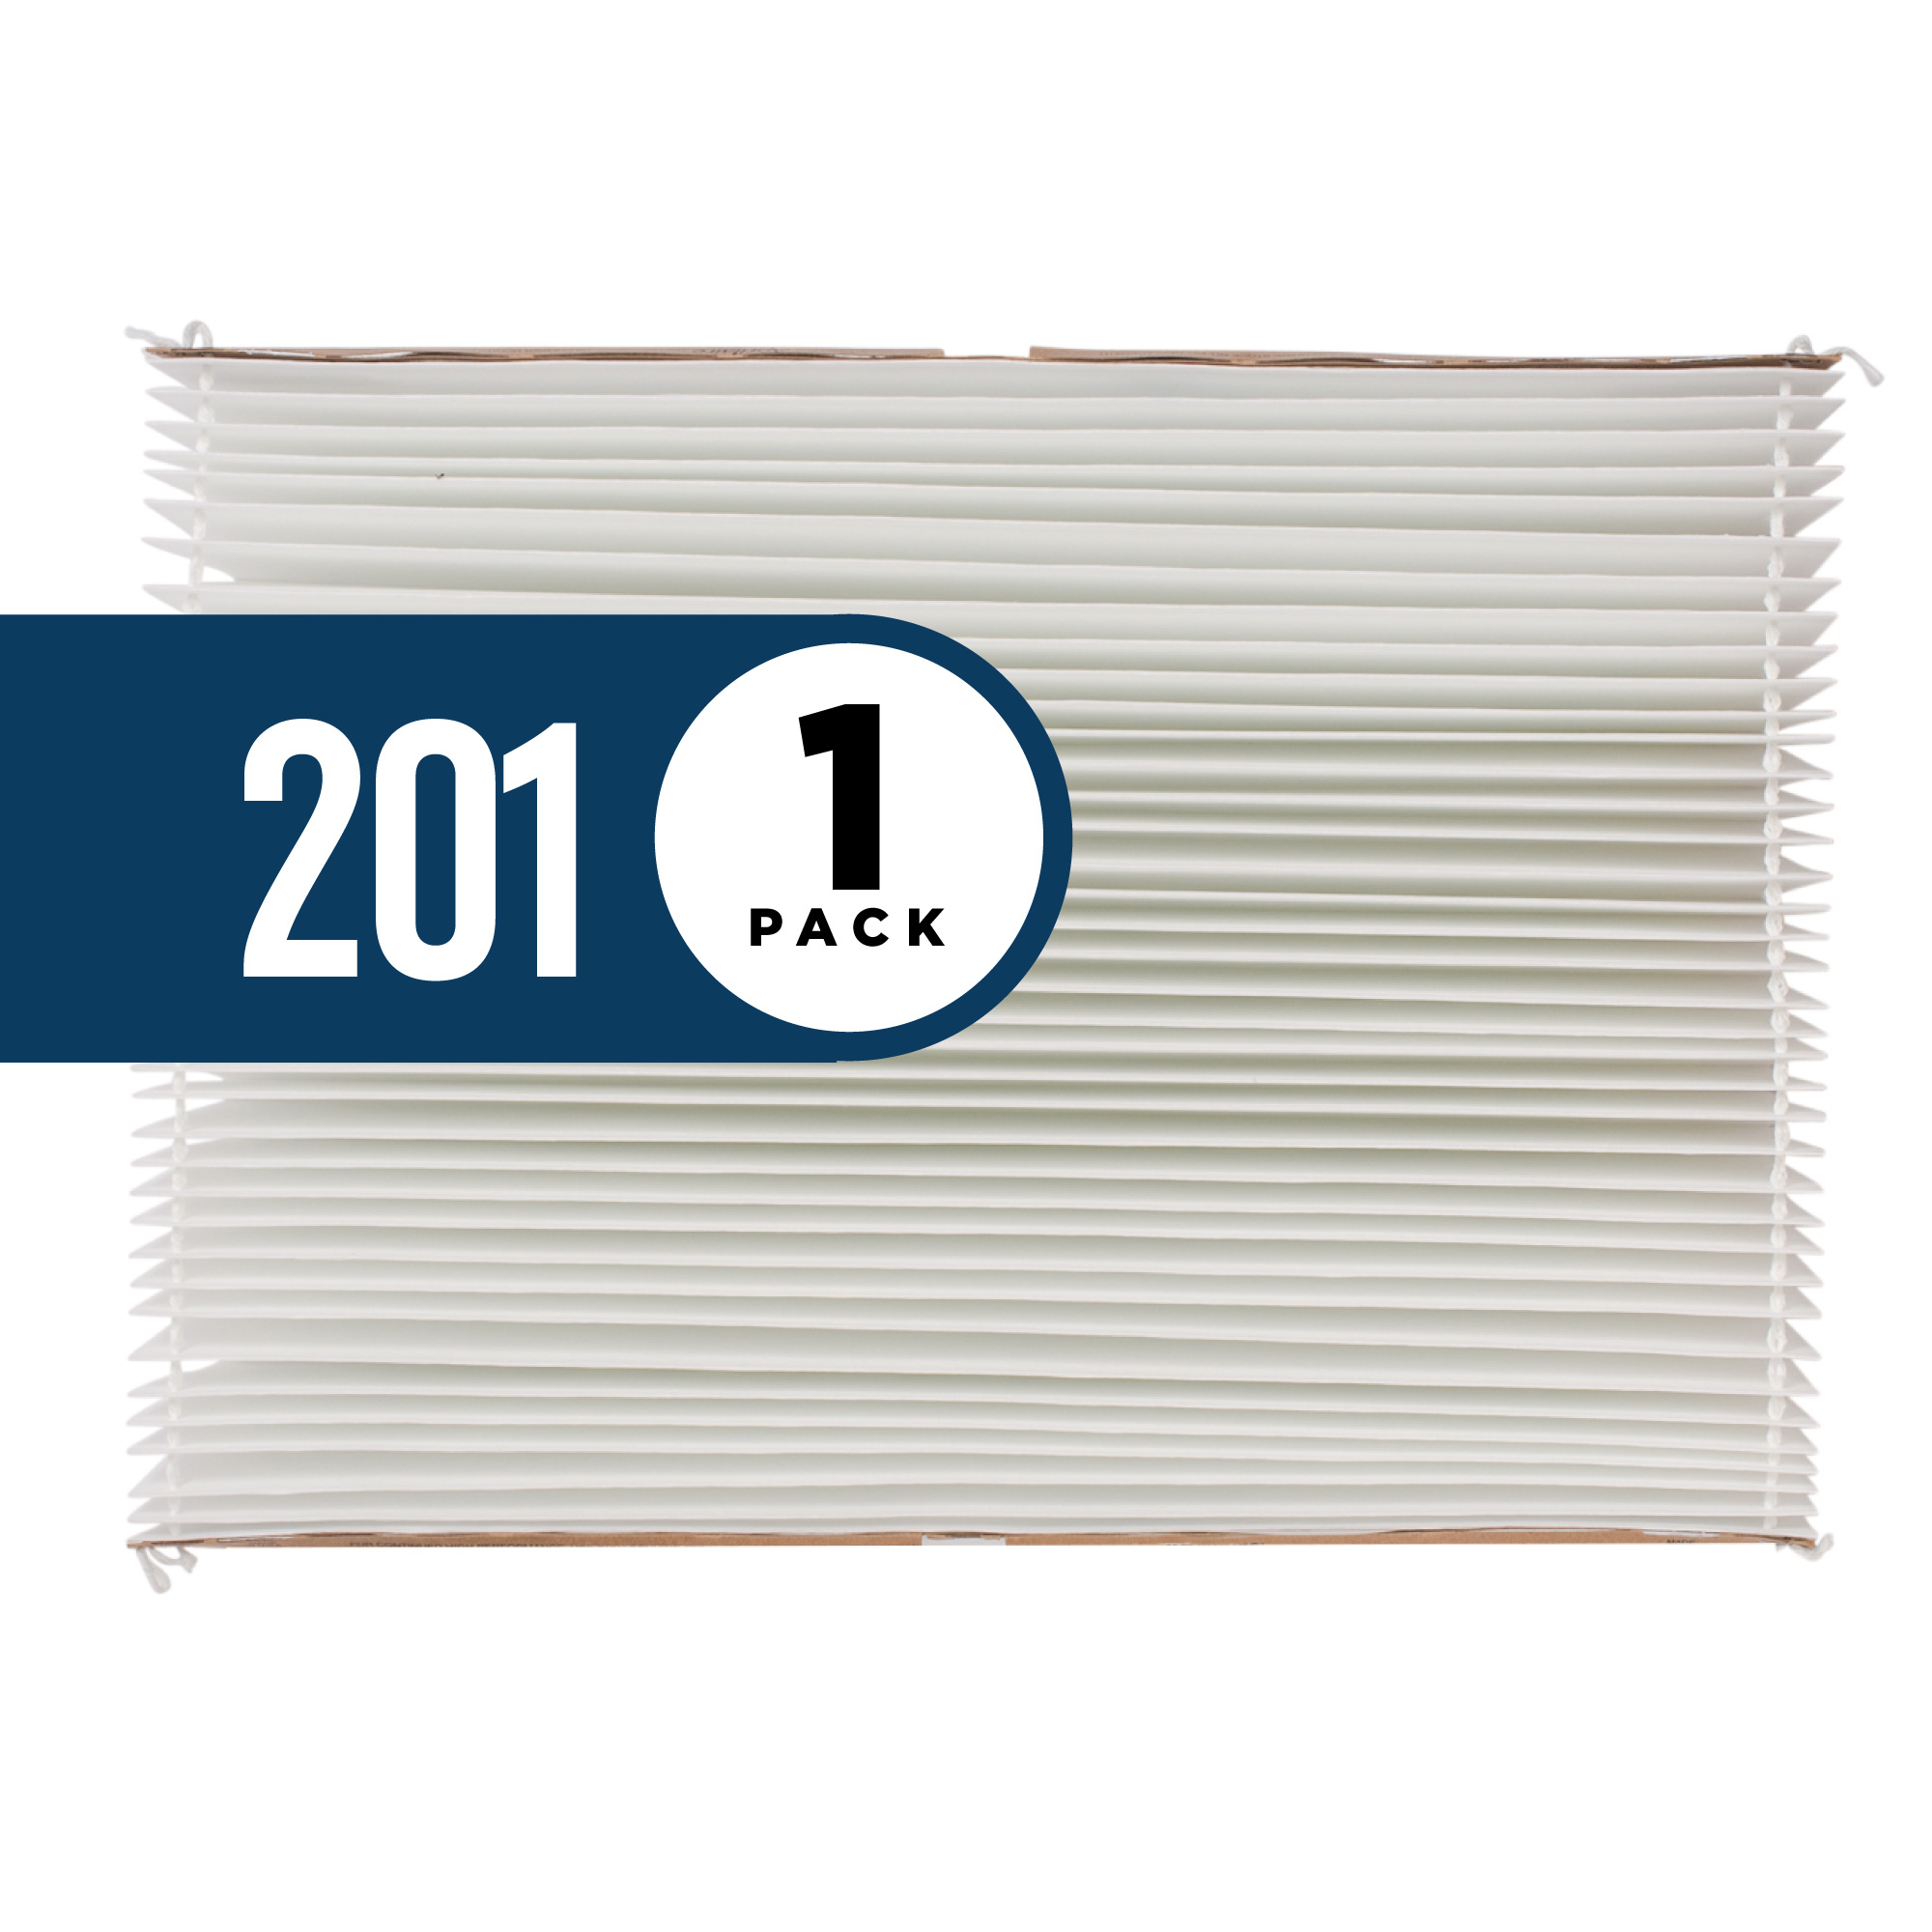 AirFilter-201-1pack